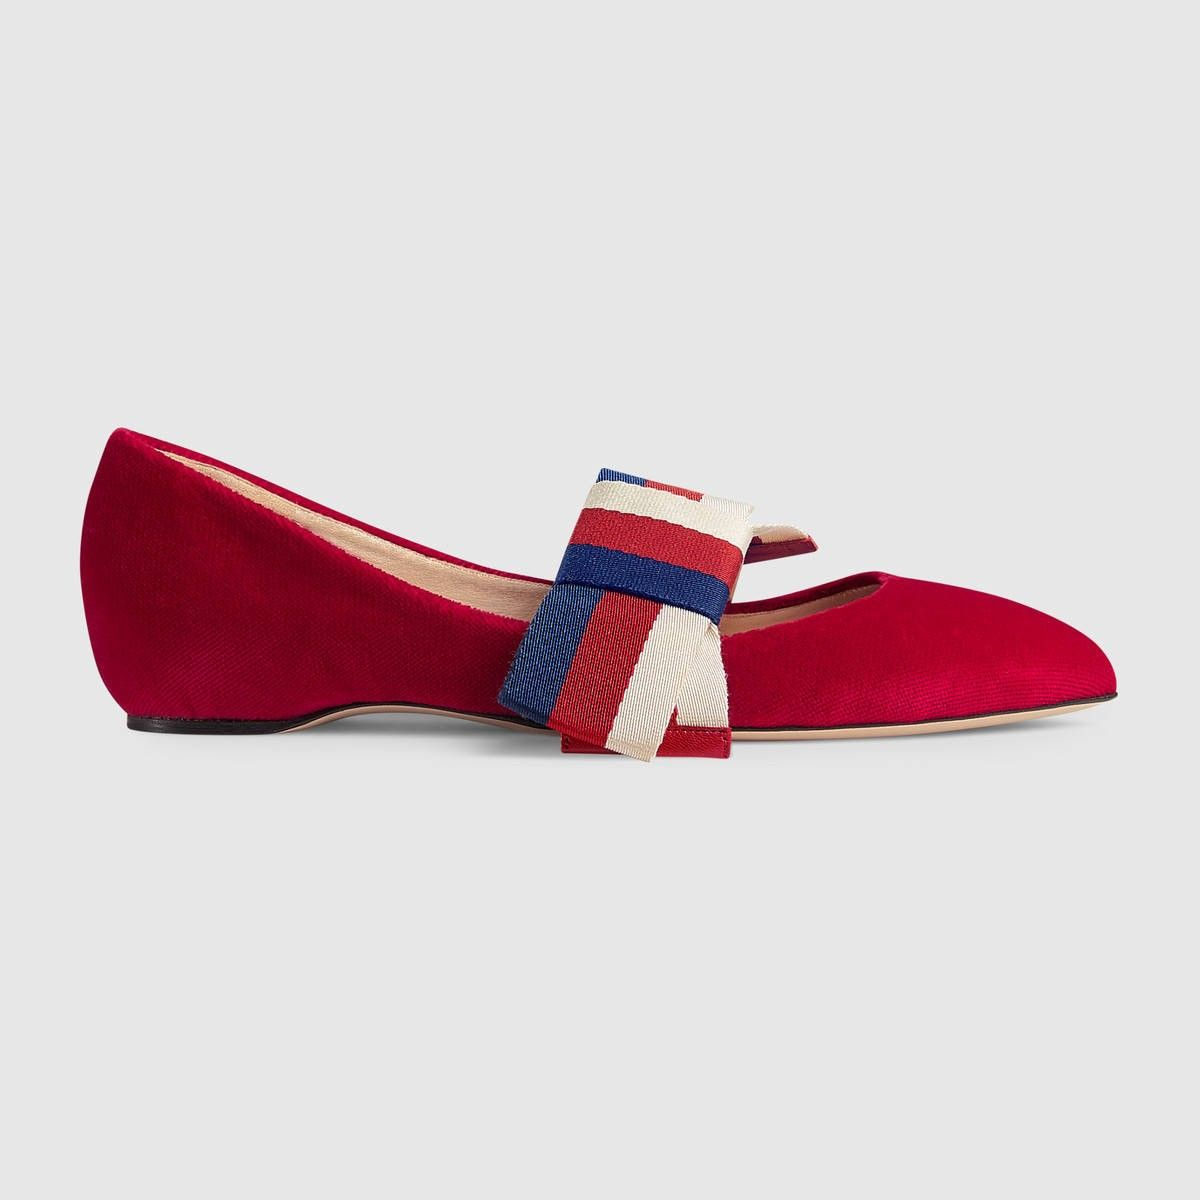 b9ff58f0a70c GUCCI Velvet ballet flat with Sylvie bow - hibiscus red velvet.  gucci   shoes